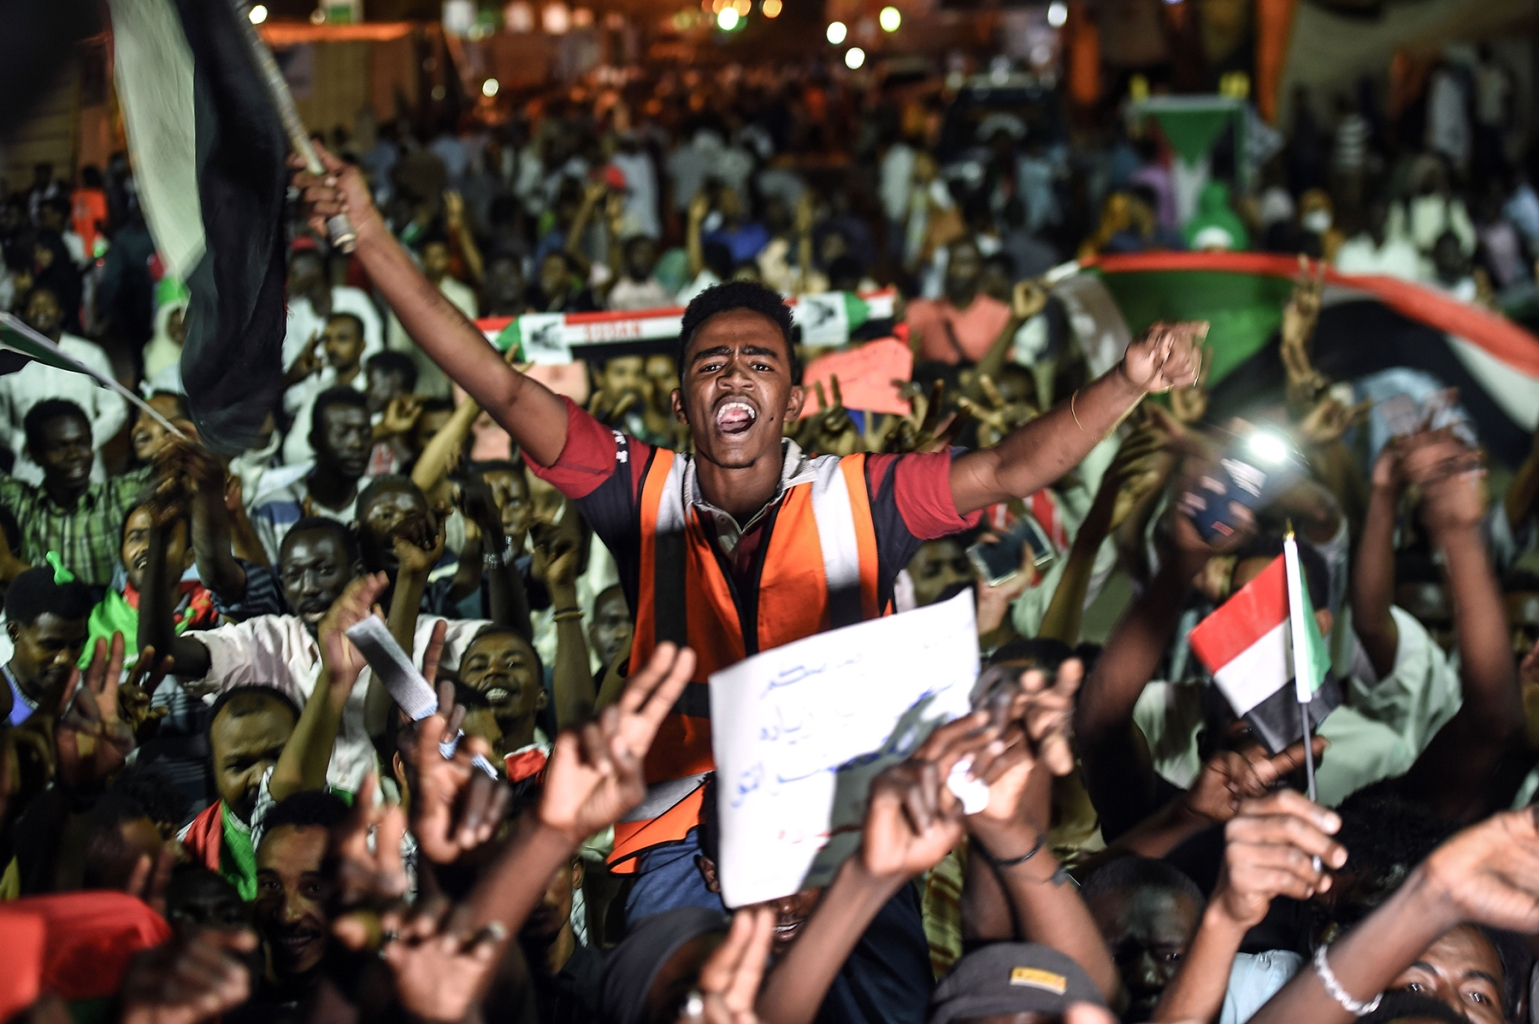 Sudanese protesters wave flags and flash victory signs as they gather for a sit-in outside the military headquarters in Khartoum on May 19. MOHAMED EL-SHAHED/AFP/Getty Images